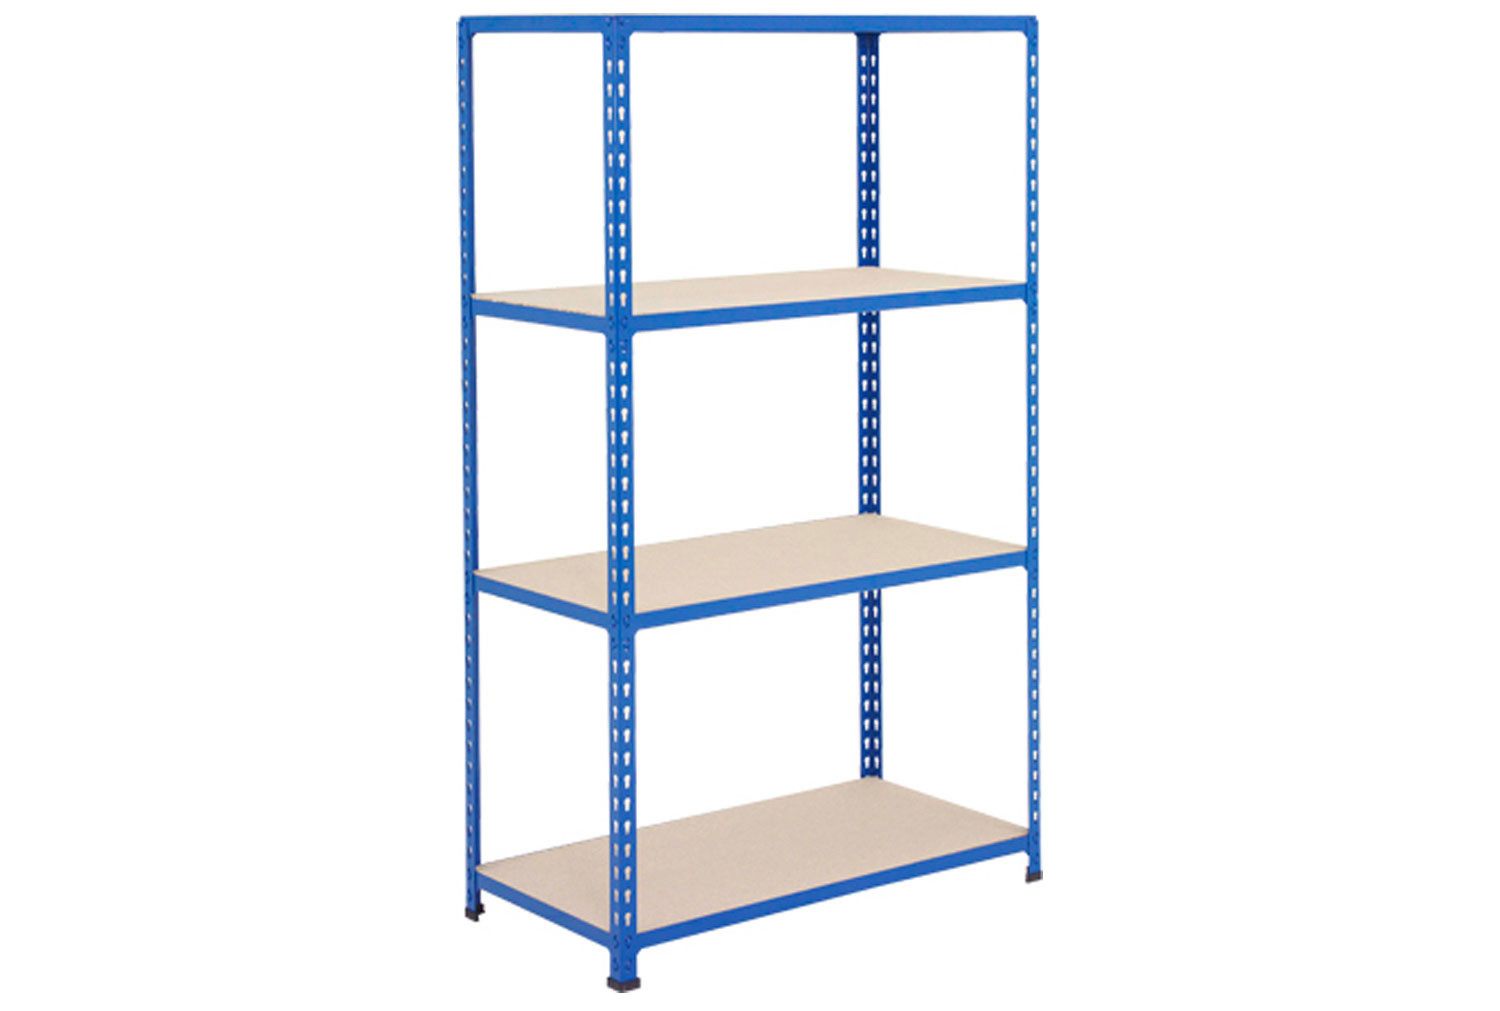 Rapid 2 Shelving With 4 Chipboard Shelves 1220wx1980h (Blue)